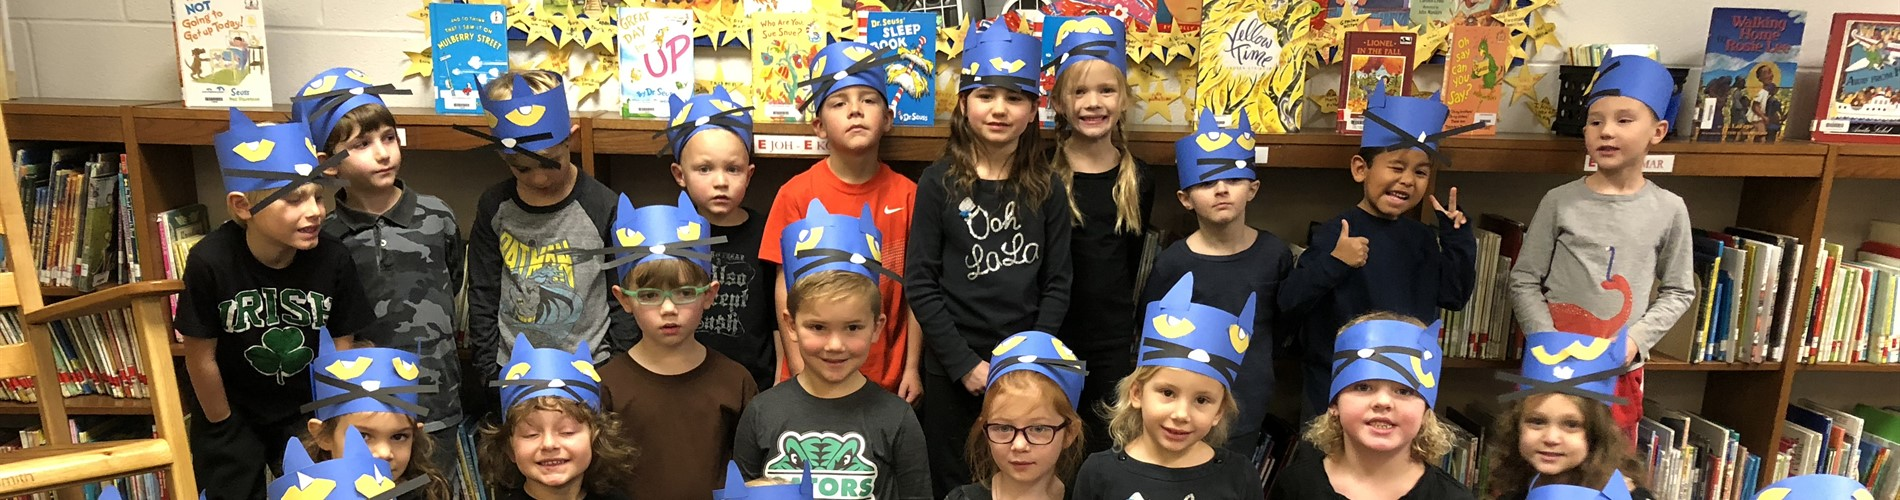 Pete the Cat Reading celebration